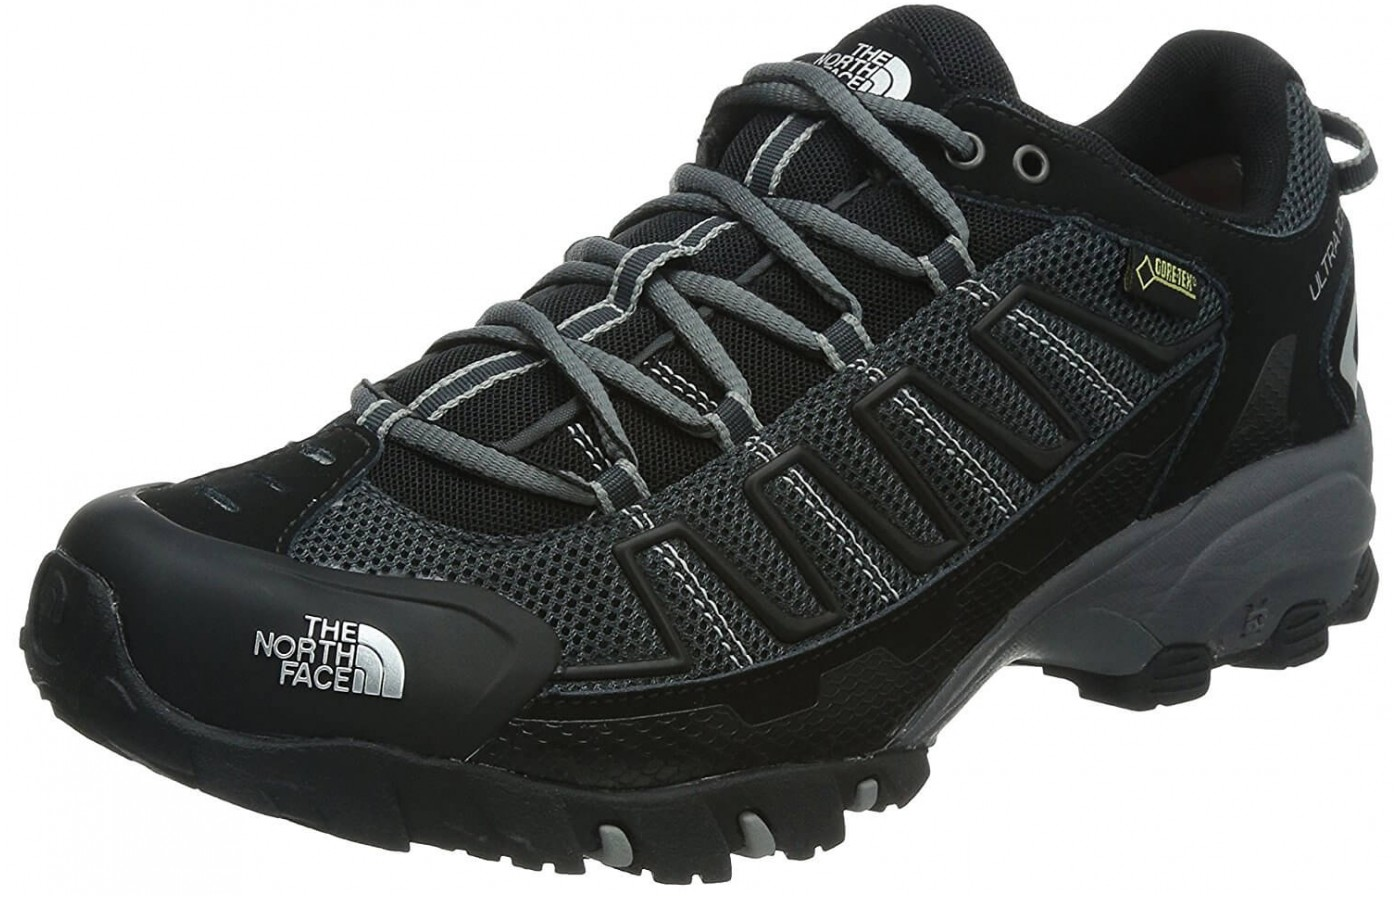 The The North Face Ultra 110 GTX features an EVA midsole